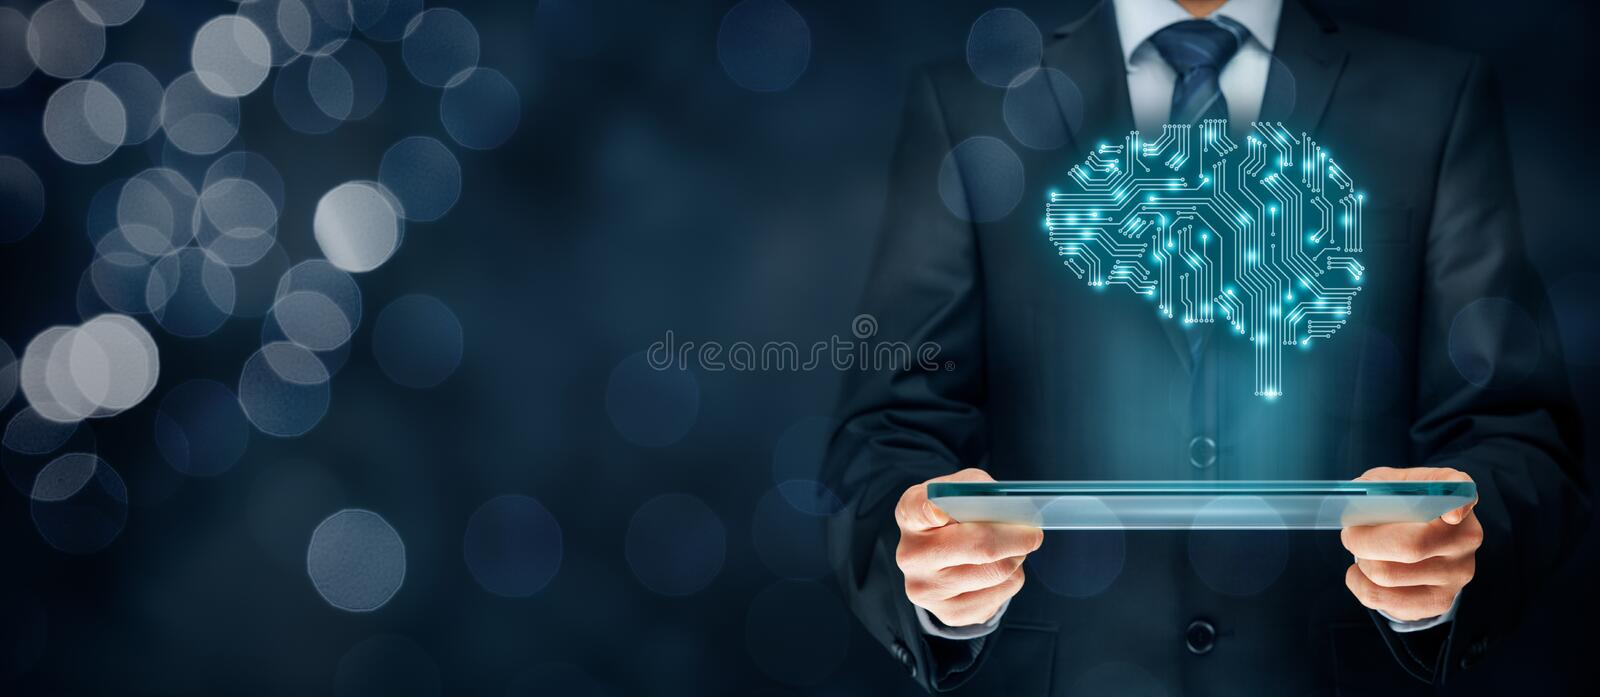 Artificial intelligence. AI, data mining, expert system software, genetic programming, machine learning, deep learning, neural networks and another modern stock image